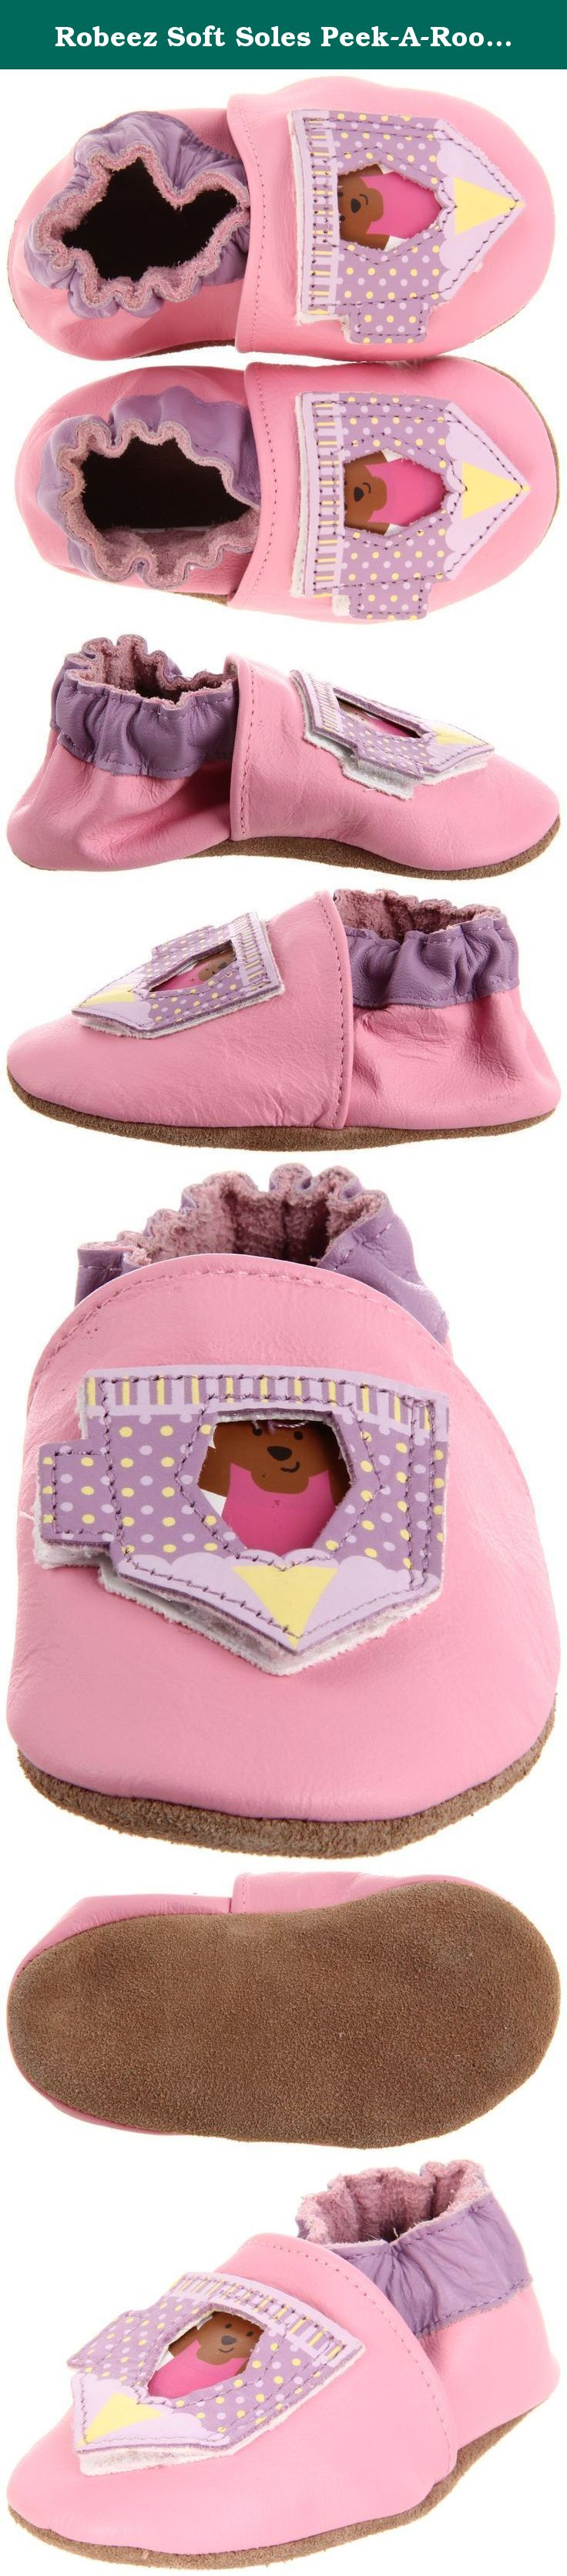 Robeez Soft Soles Peek-A-Roo Circus Act Pre-Walker (Infant/Toddler), Pink, 6-12 Months (2.5-4 M US Infant).